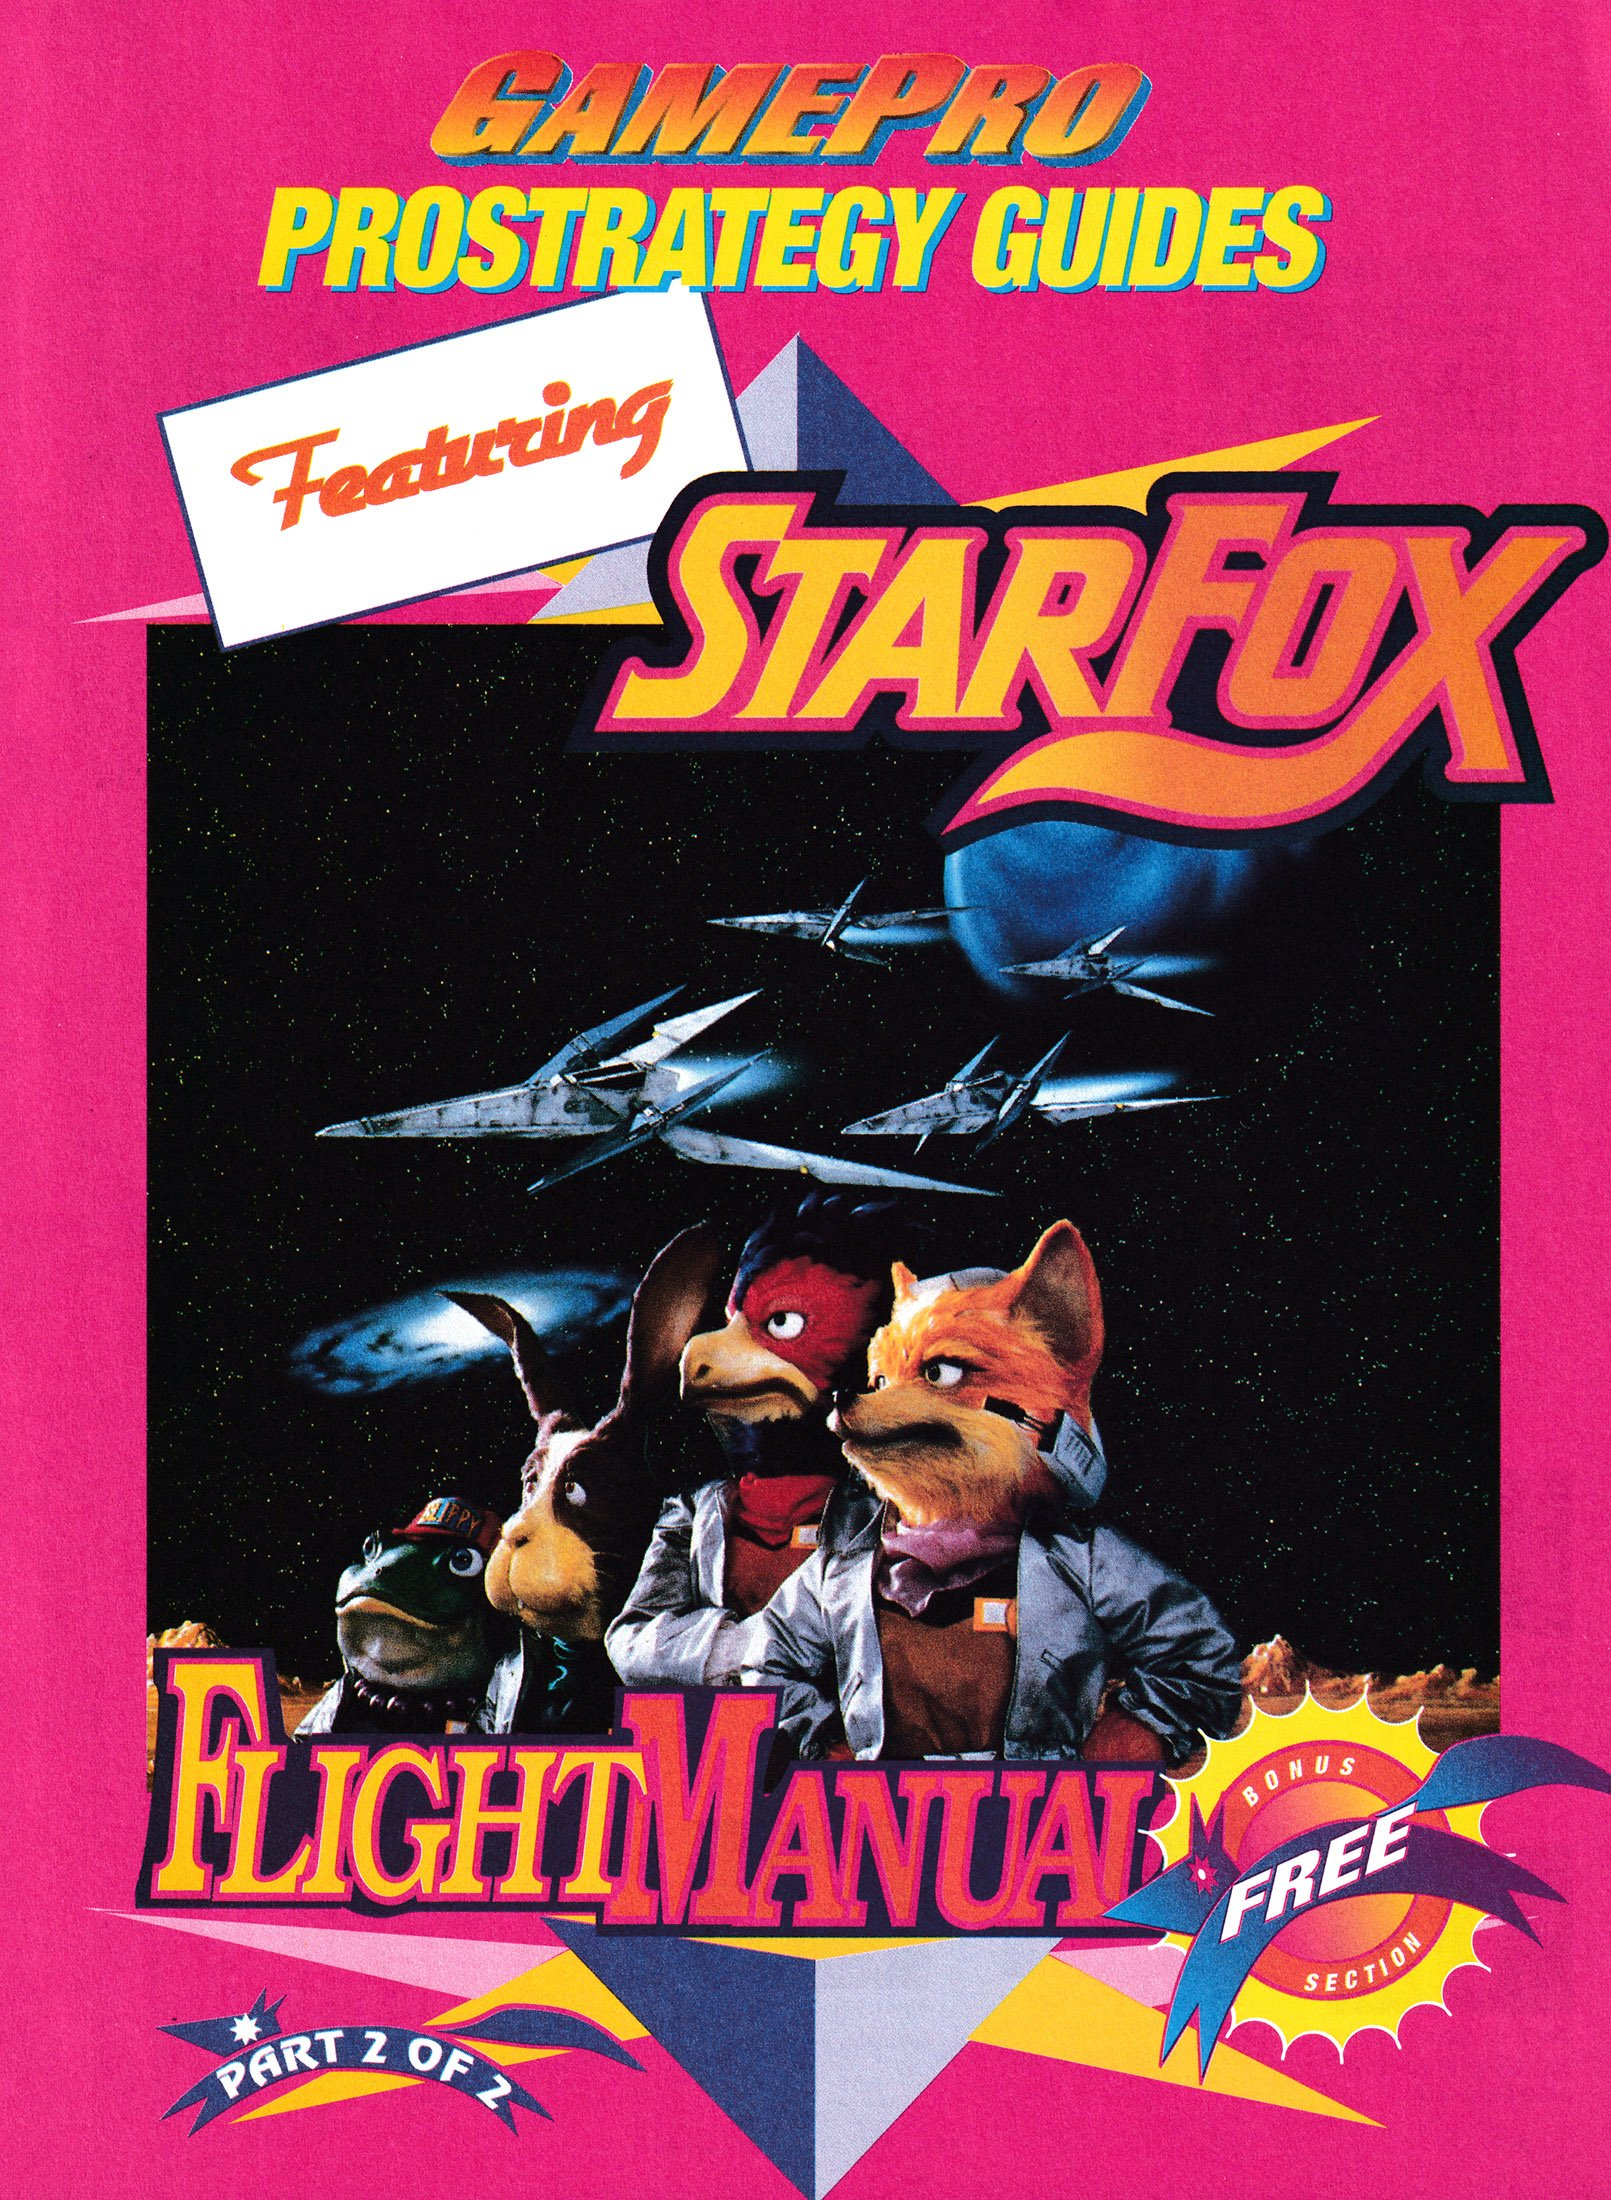 GamePro ProStrategy Guide - StarFox Flight Manual Part 2 of 2 (August 1993)